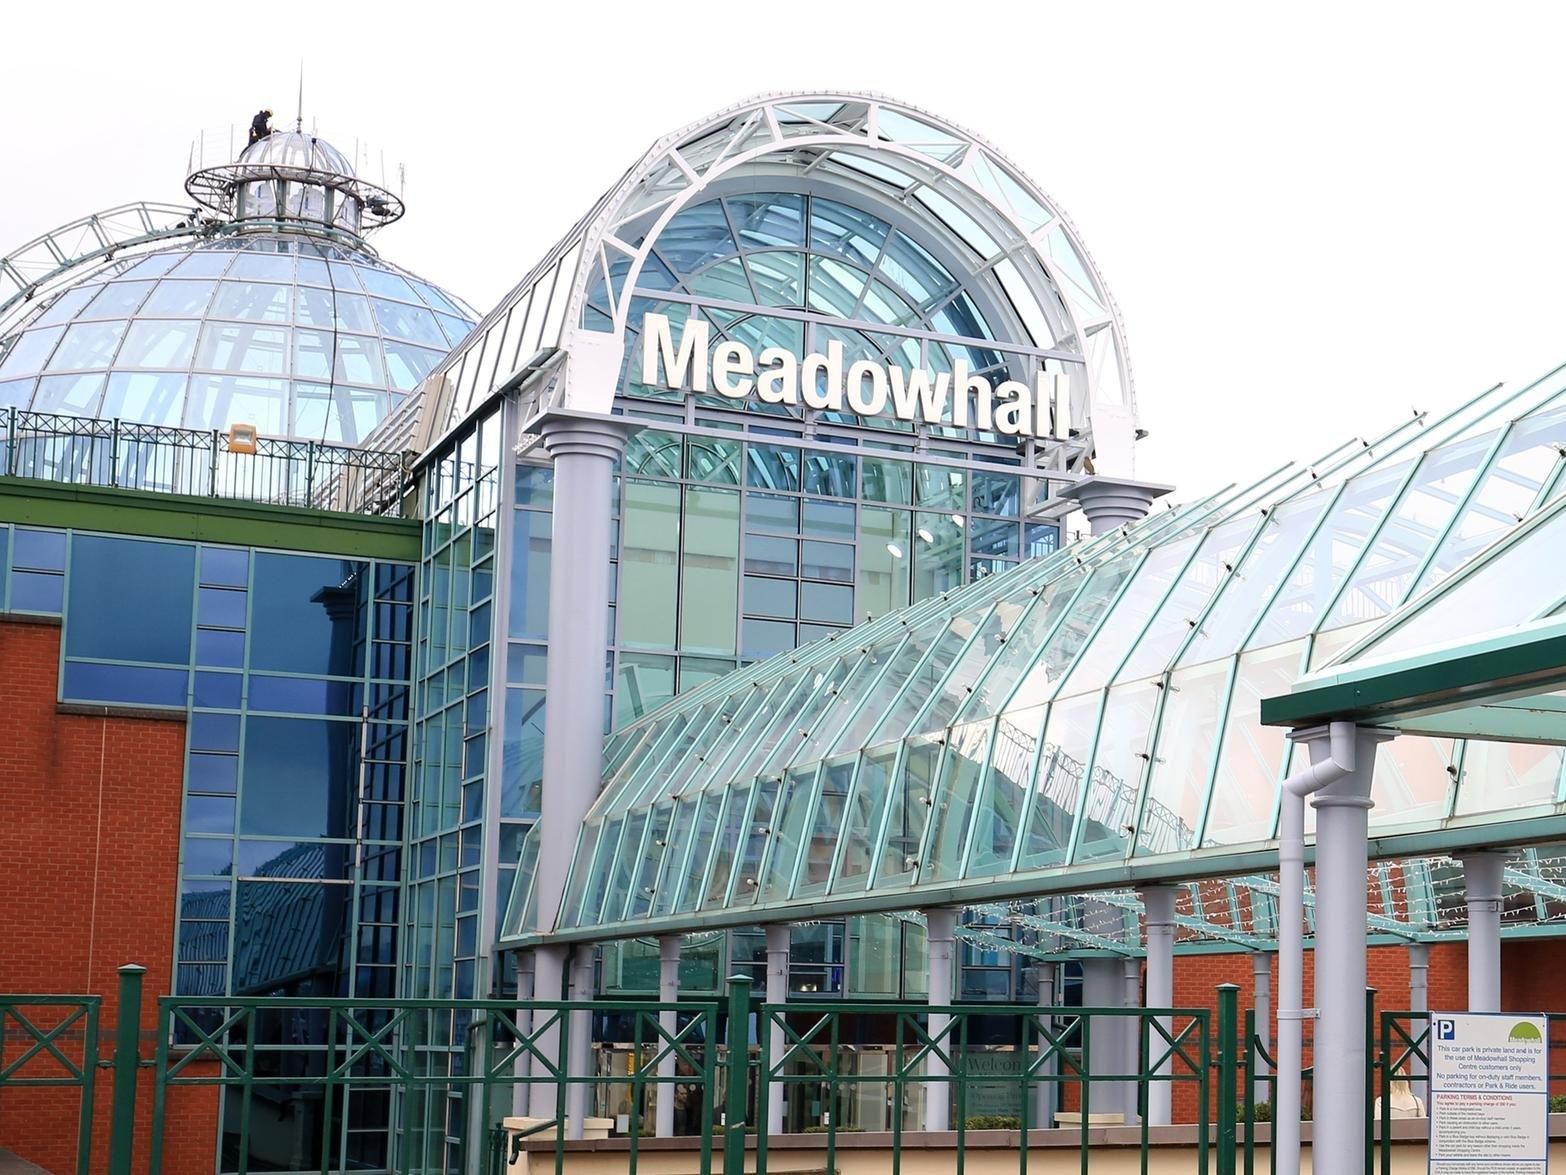 These Are All The New Shops That Have Opened In Meadowhall This Year The Star